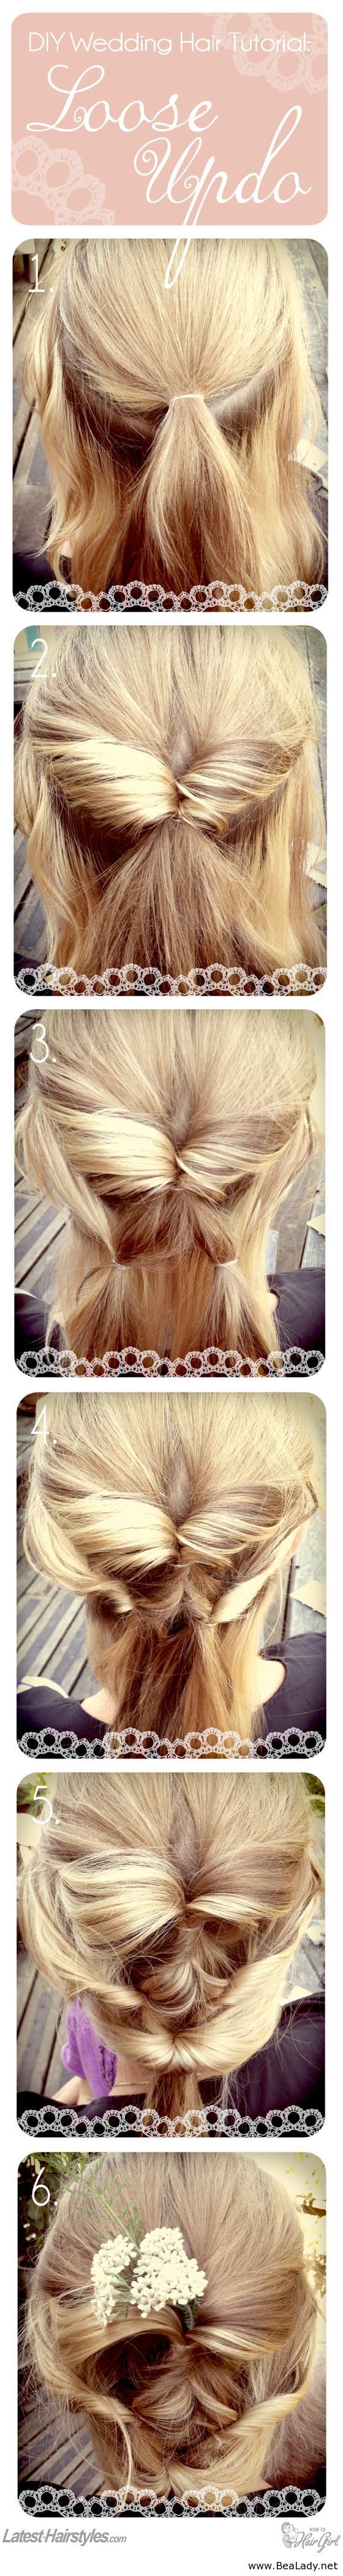 best pelo hairstyles images on pinterest hairstyles make up